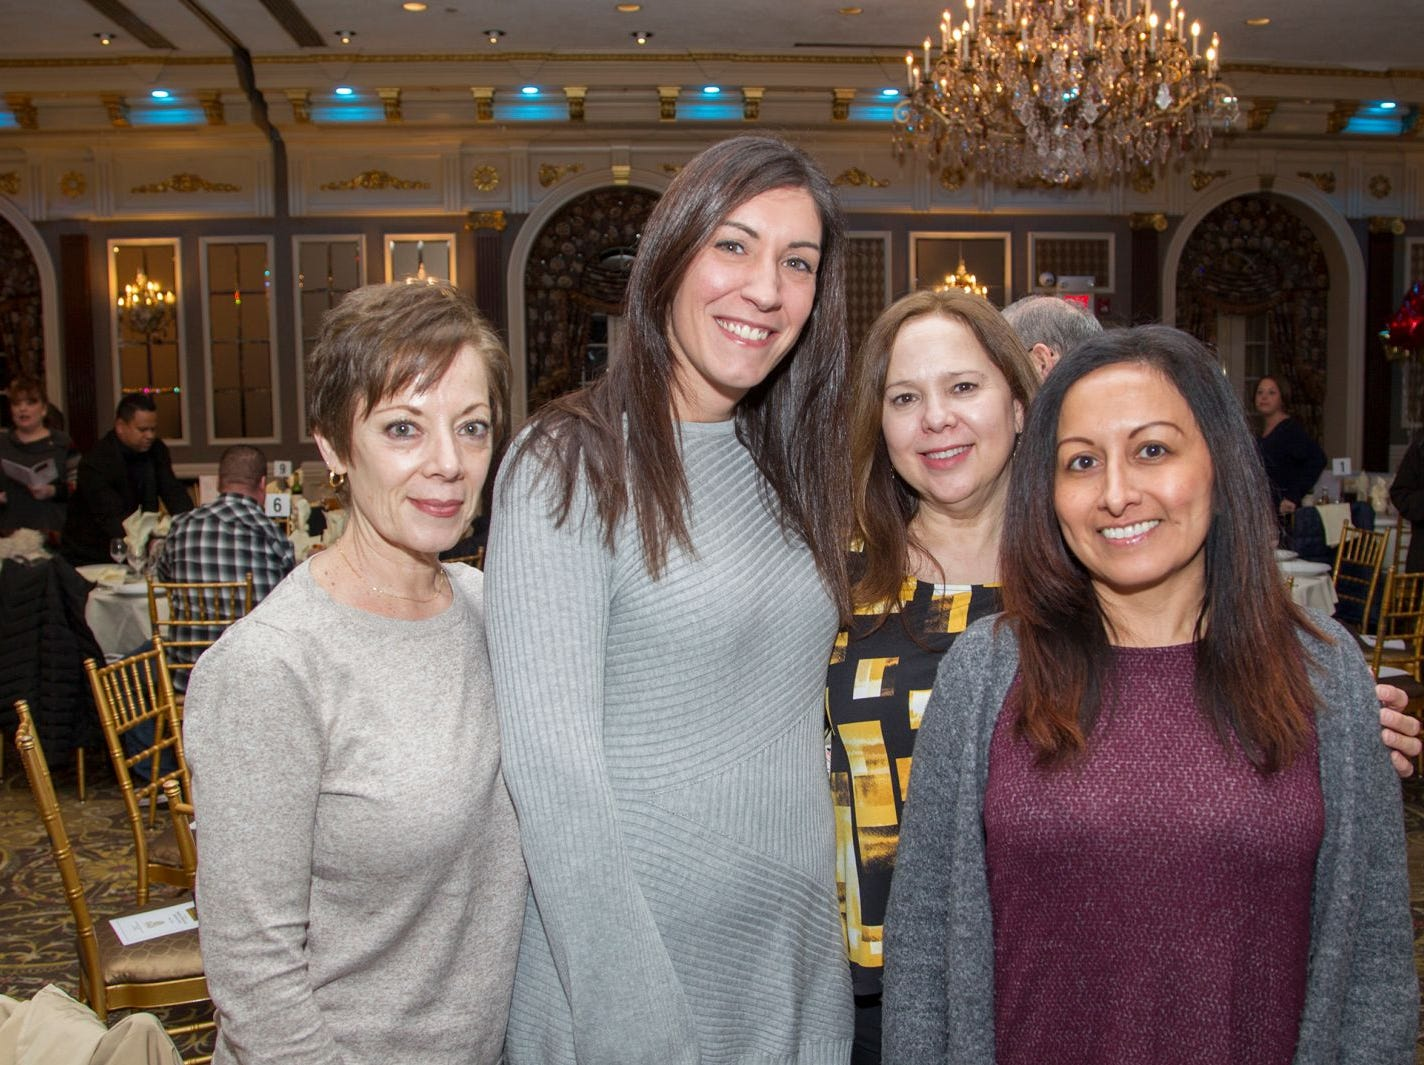 Linda Ulm, Jackie Miraglin, Gina Arechiga, Sally Ortiz.  A Night at the Races hosted by OASIS at the Brownstone in Paterson. 2/7/2019